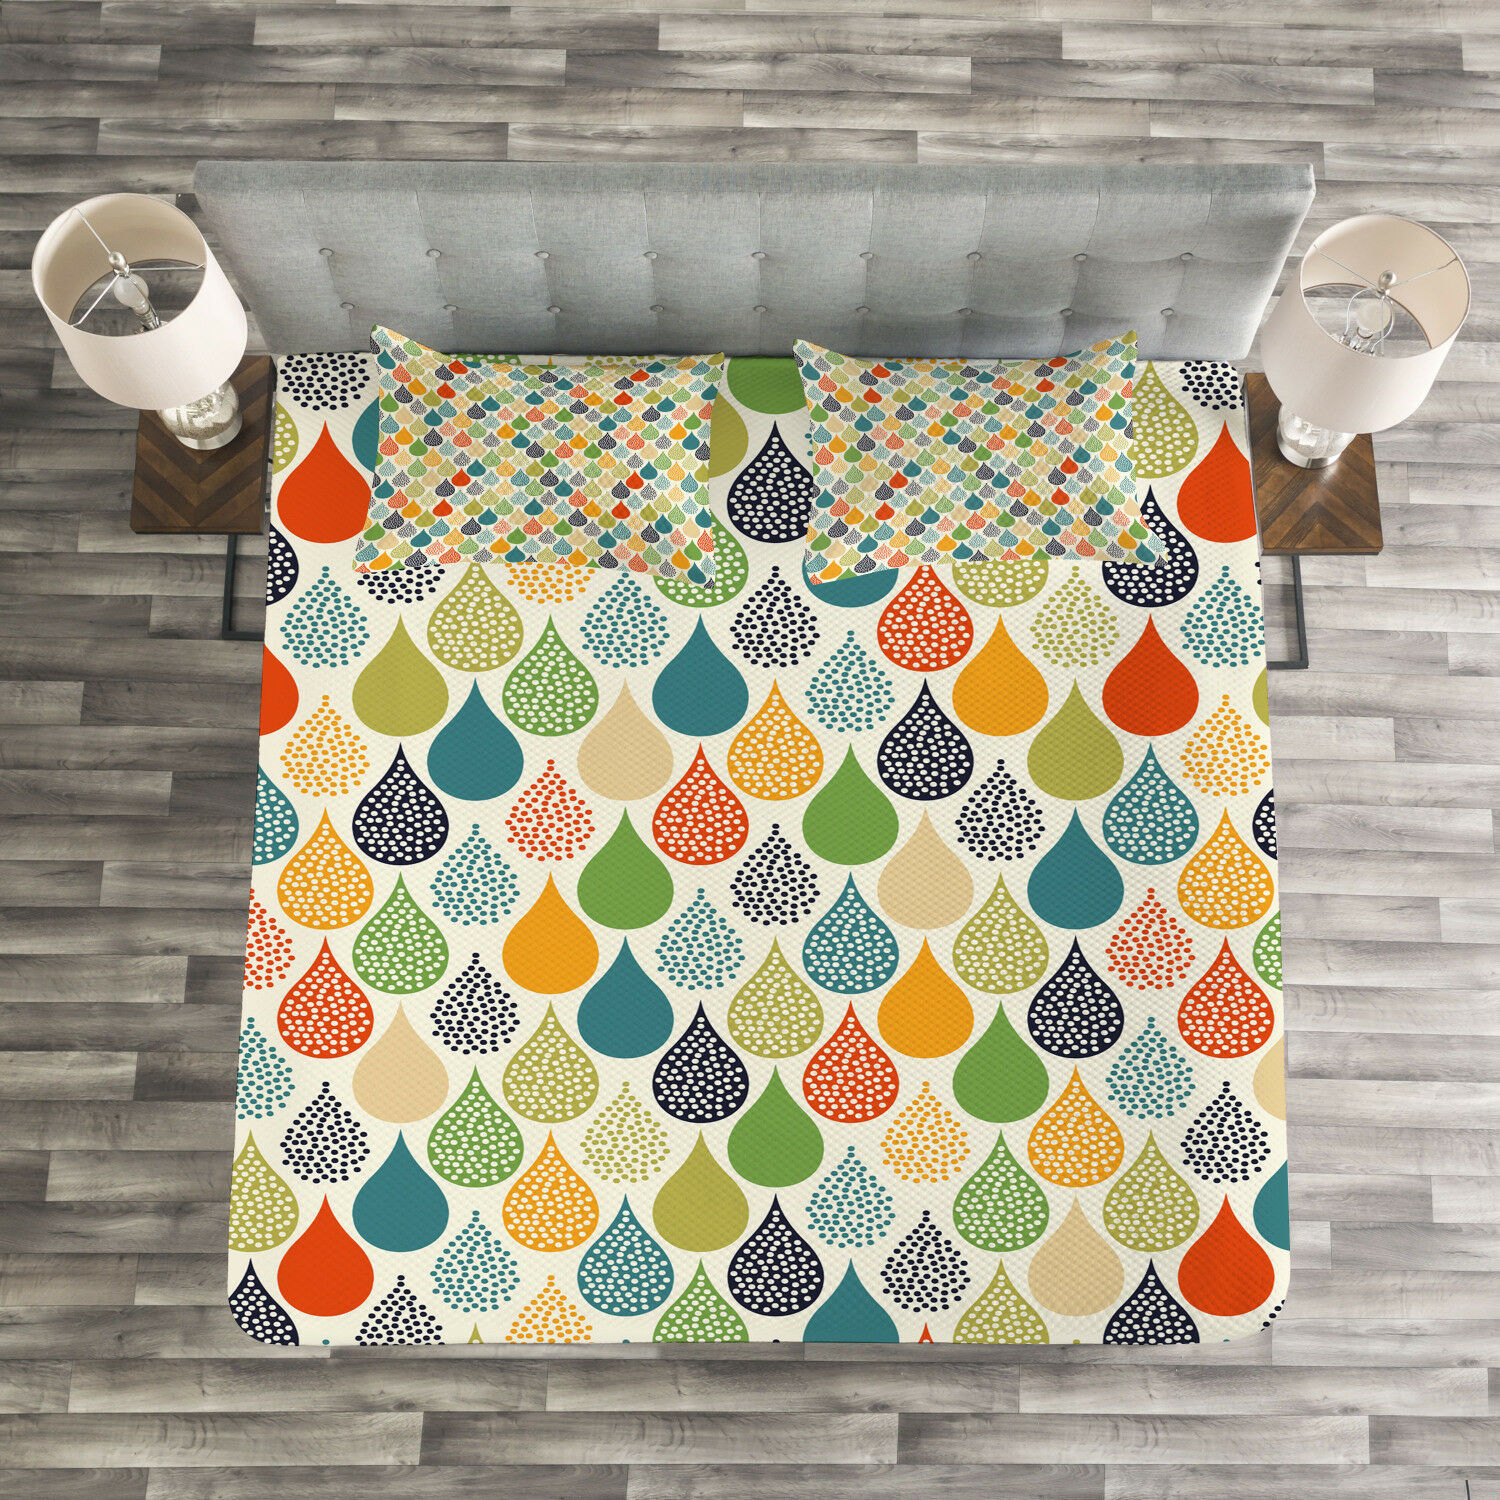 Abstract Quilted Bedspread & Pillow Shams Set, colorful Large Drops Print